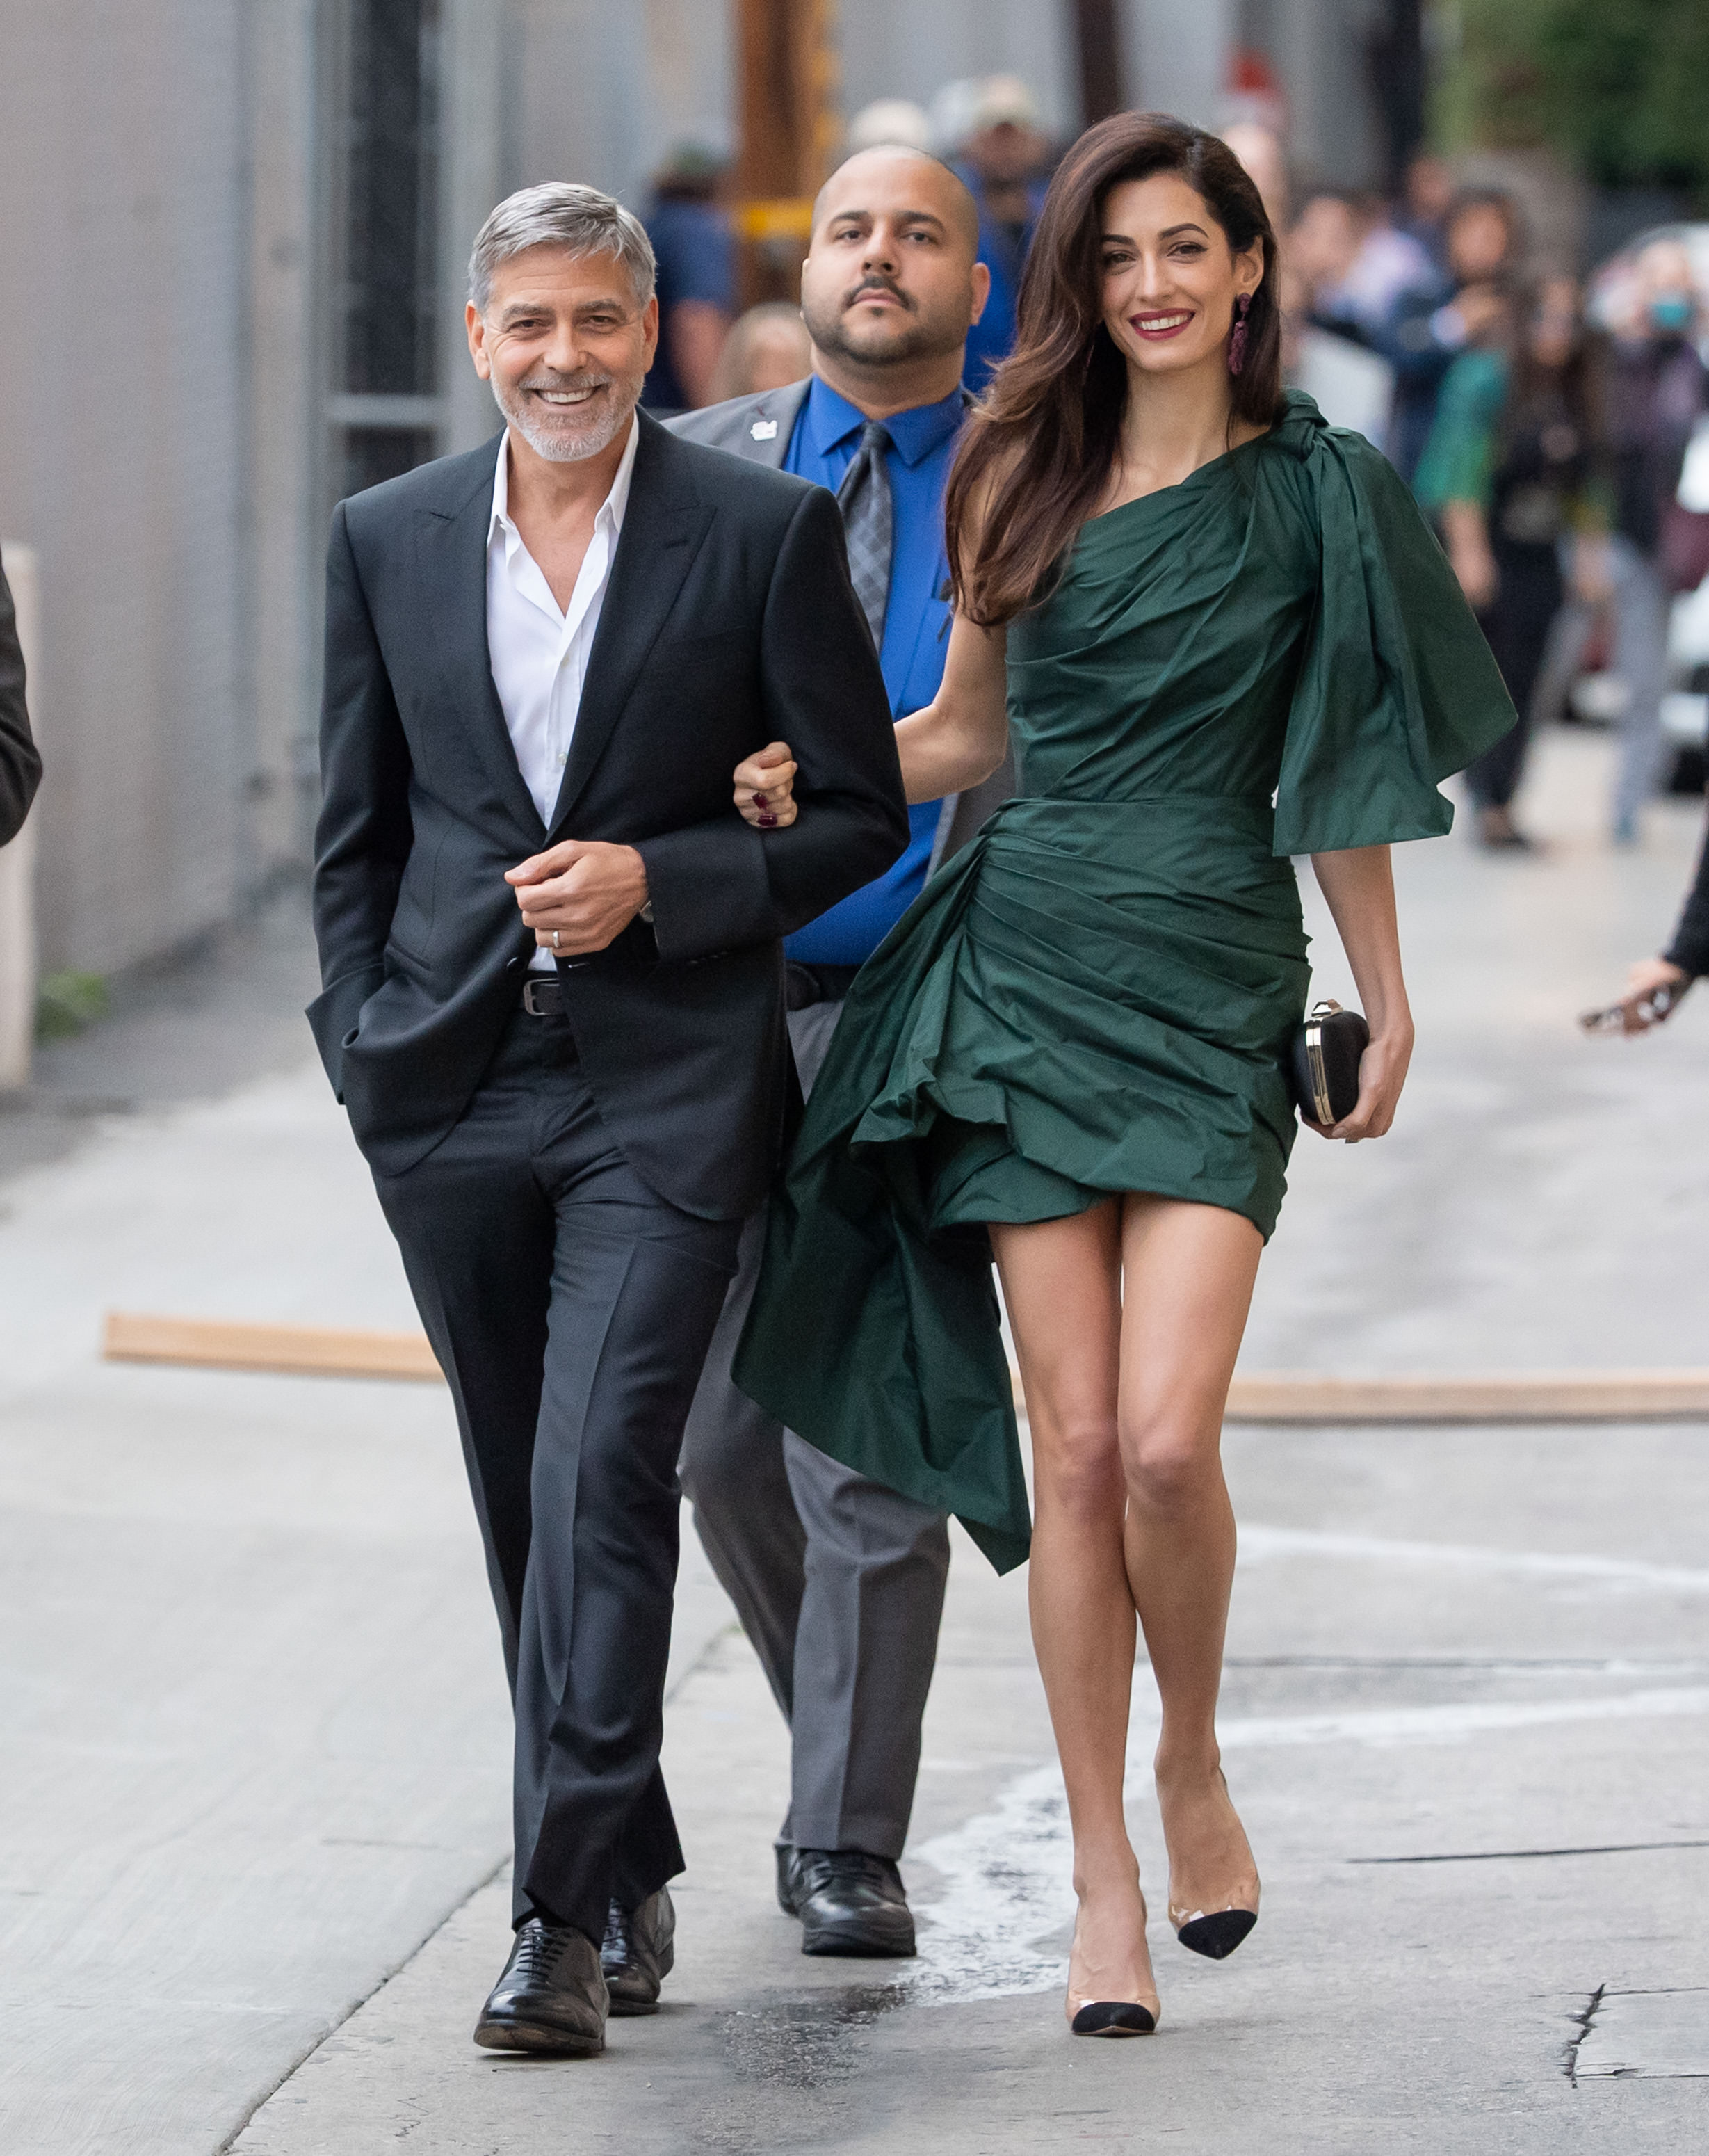 George Clooney junto s Amal Clooney/The Grosby Group.